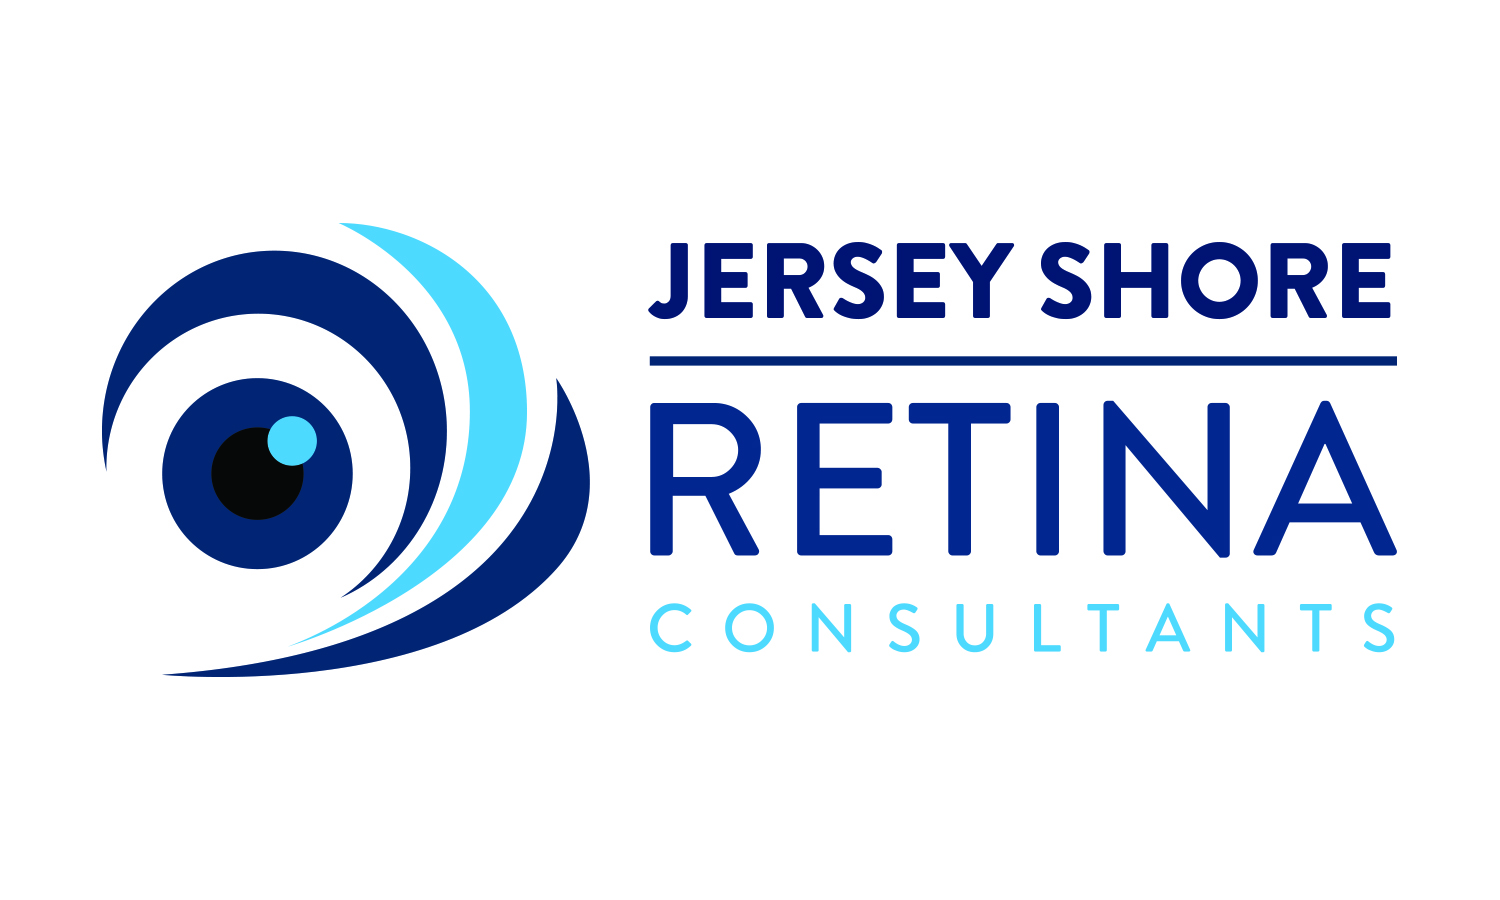 Jersey Shore Retina Consultants, LLC